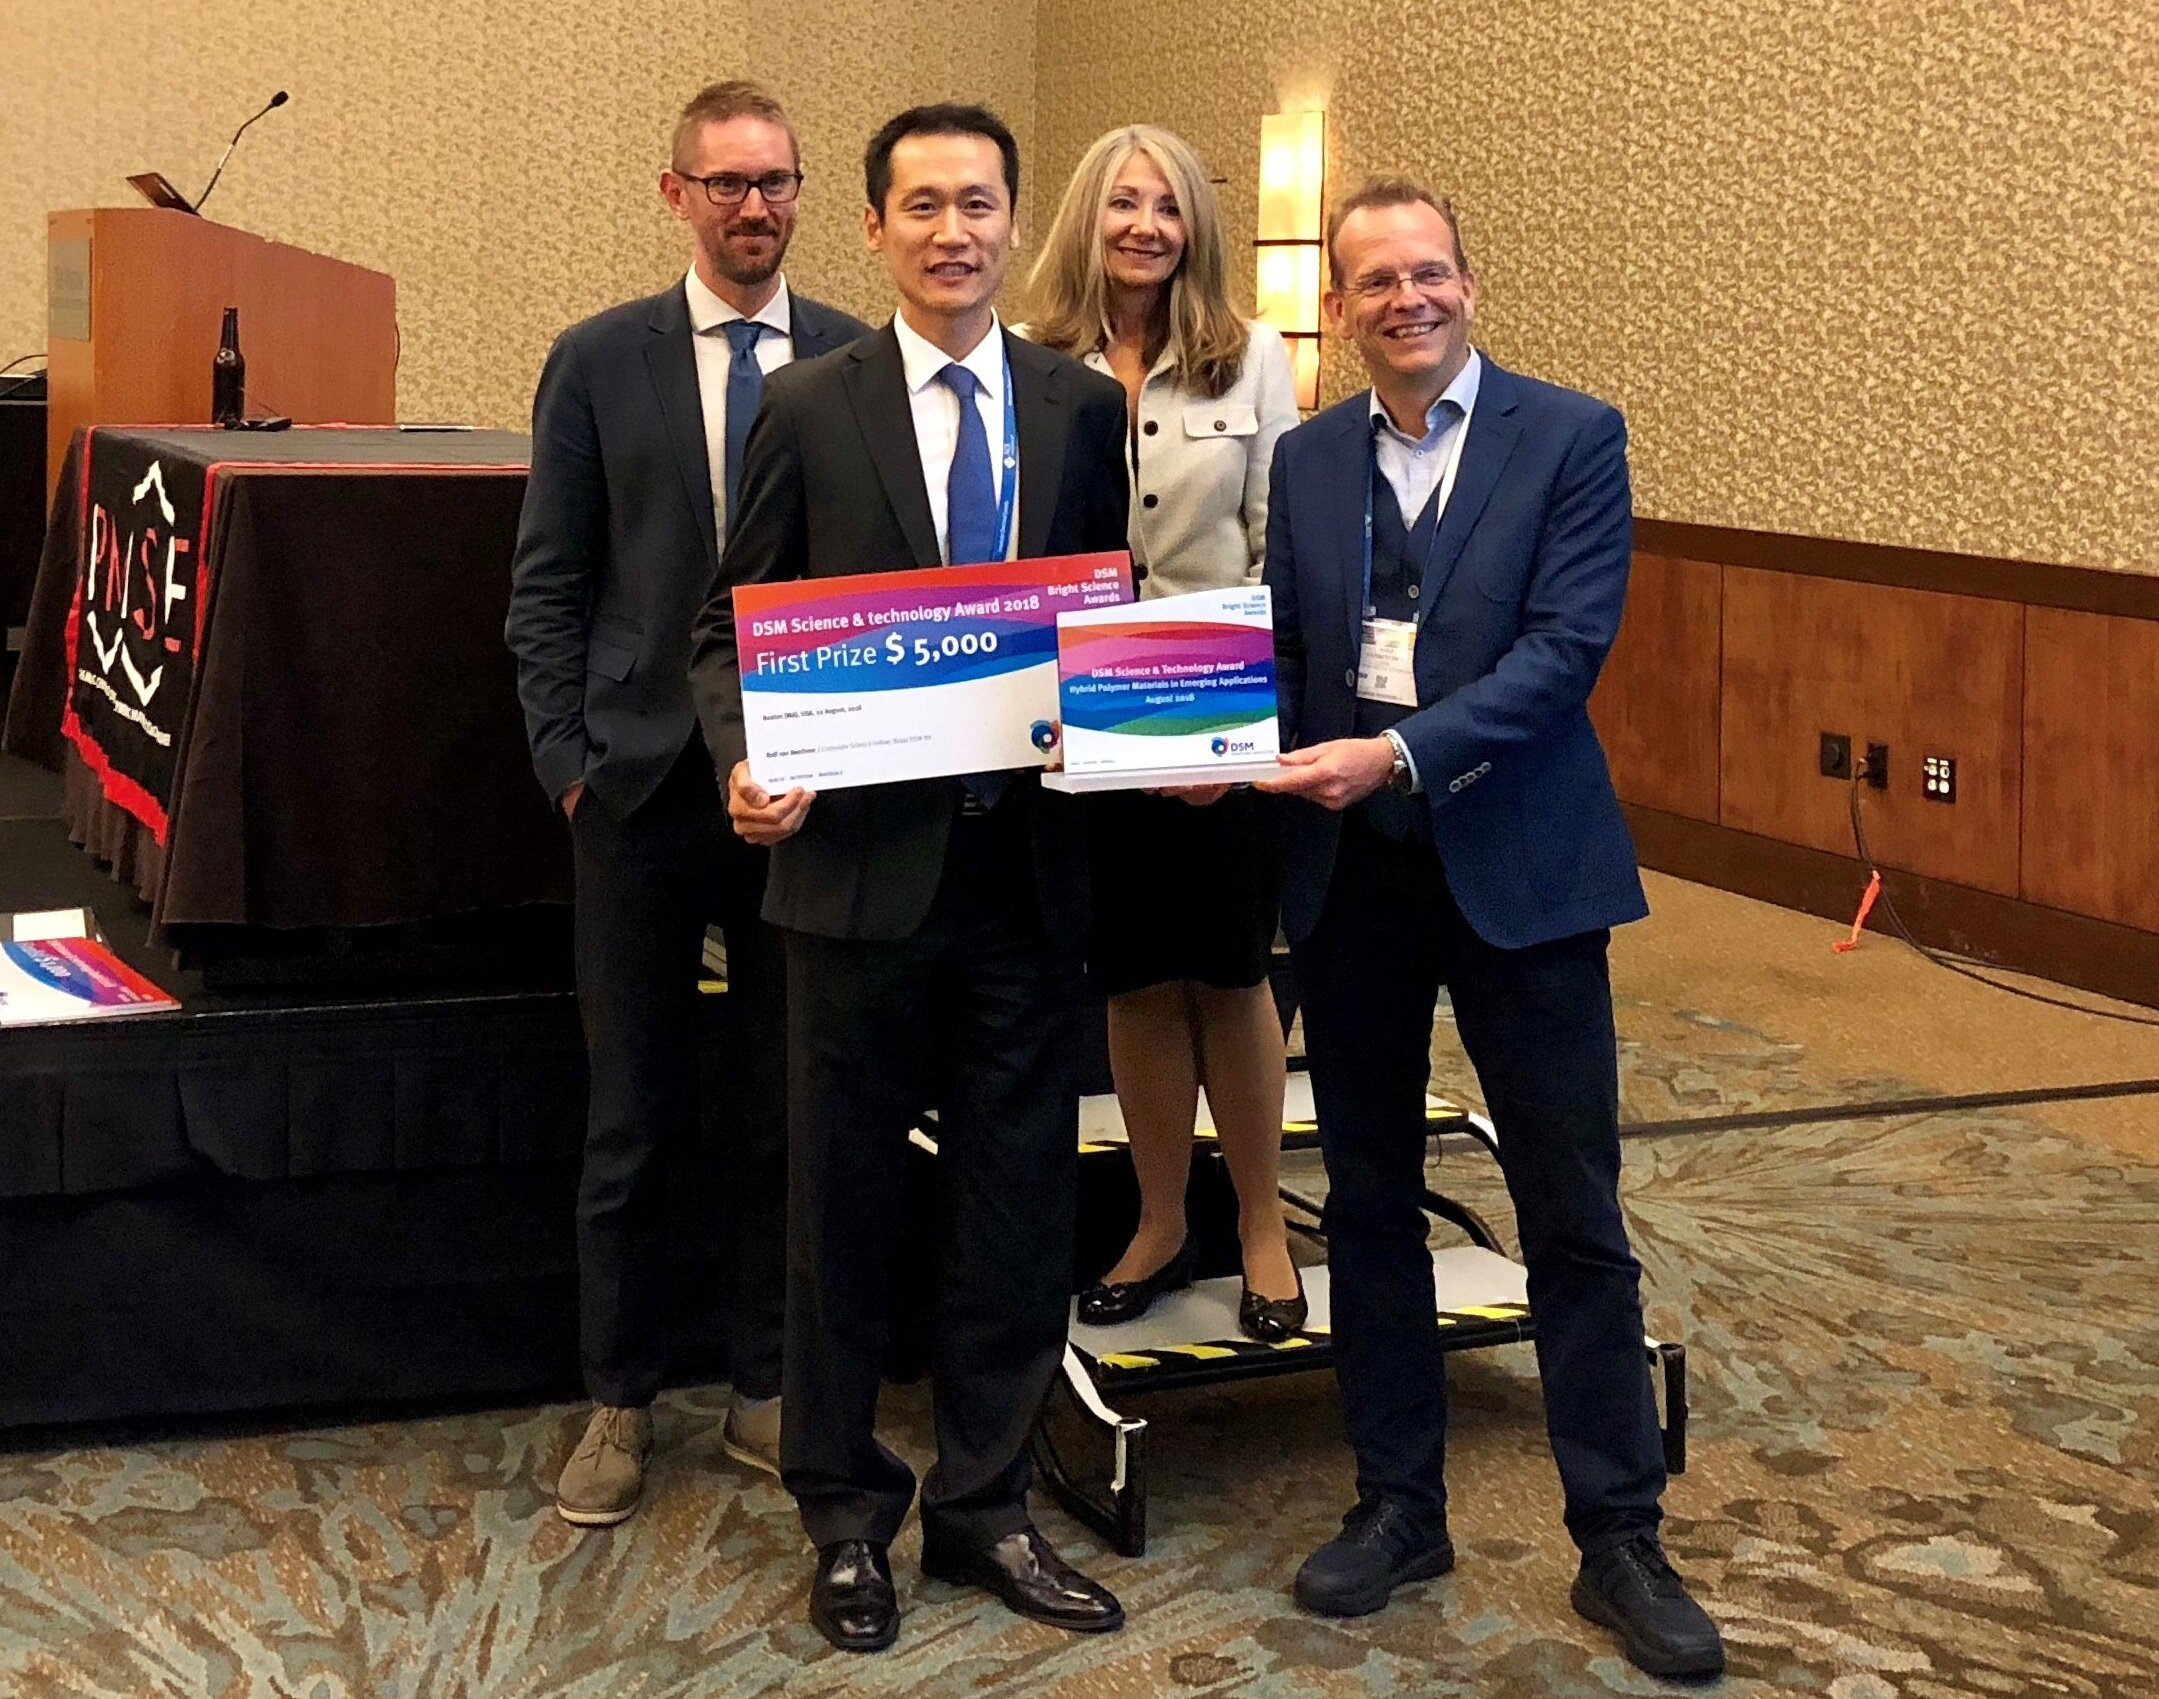 DSM Science & Technology Award – POLY, ACS - Won the DSM award, given to one individual annually for the best lecture. (link)Boston, MA, August 2018